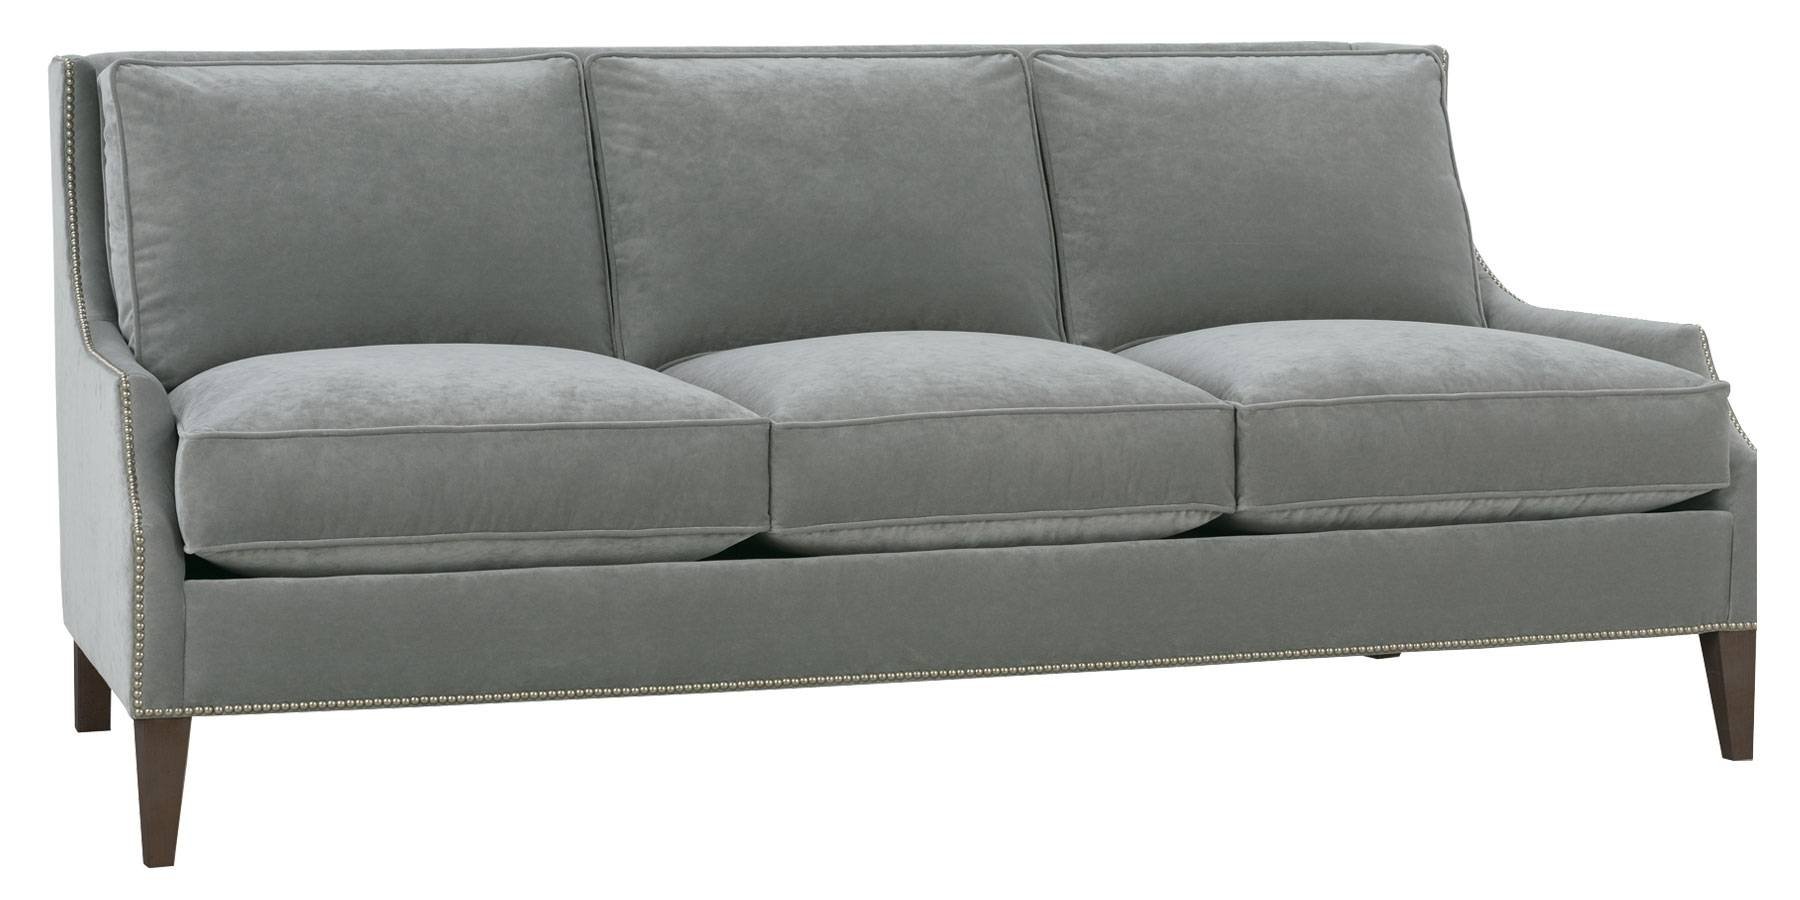 Best 30 of apartment size sofas and sectionals - Best sectionals for apartments ...